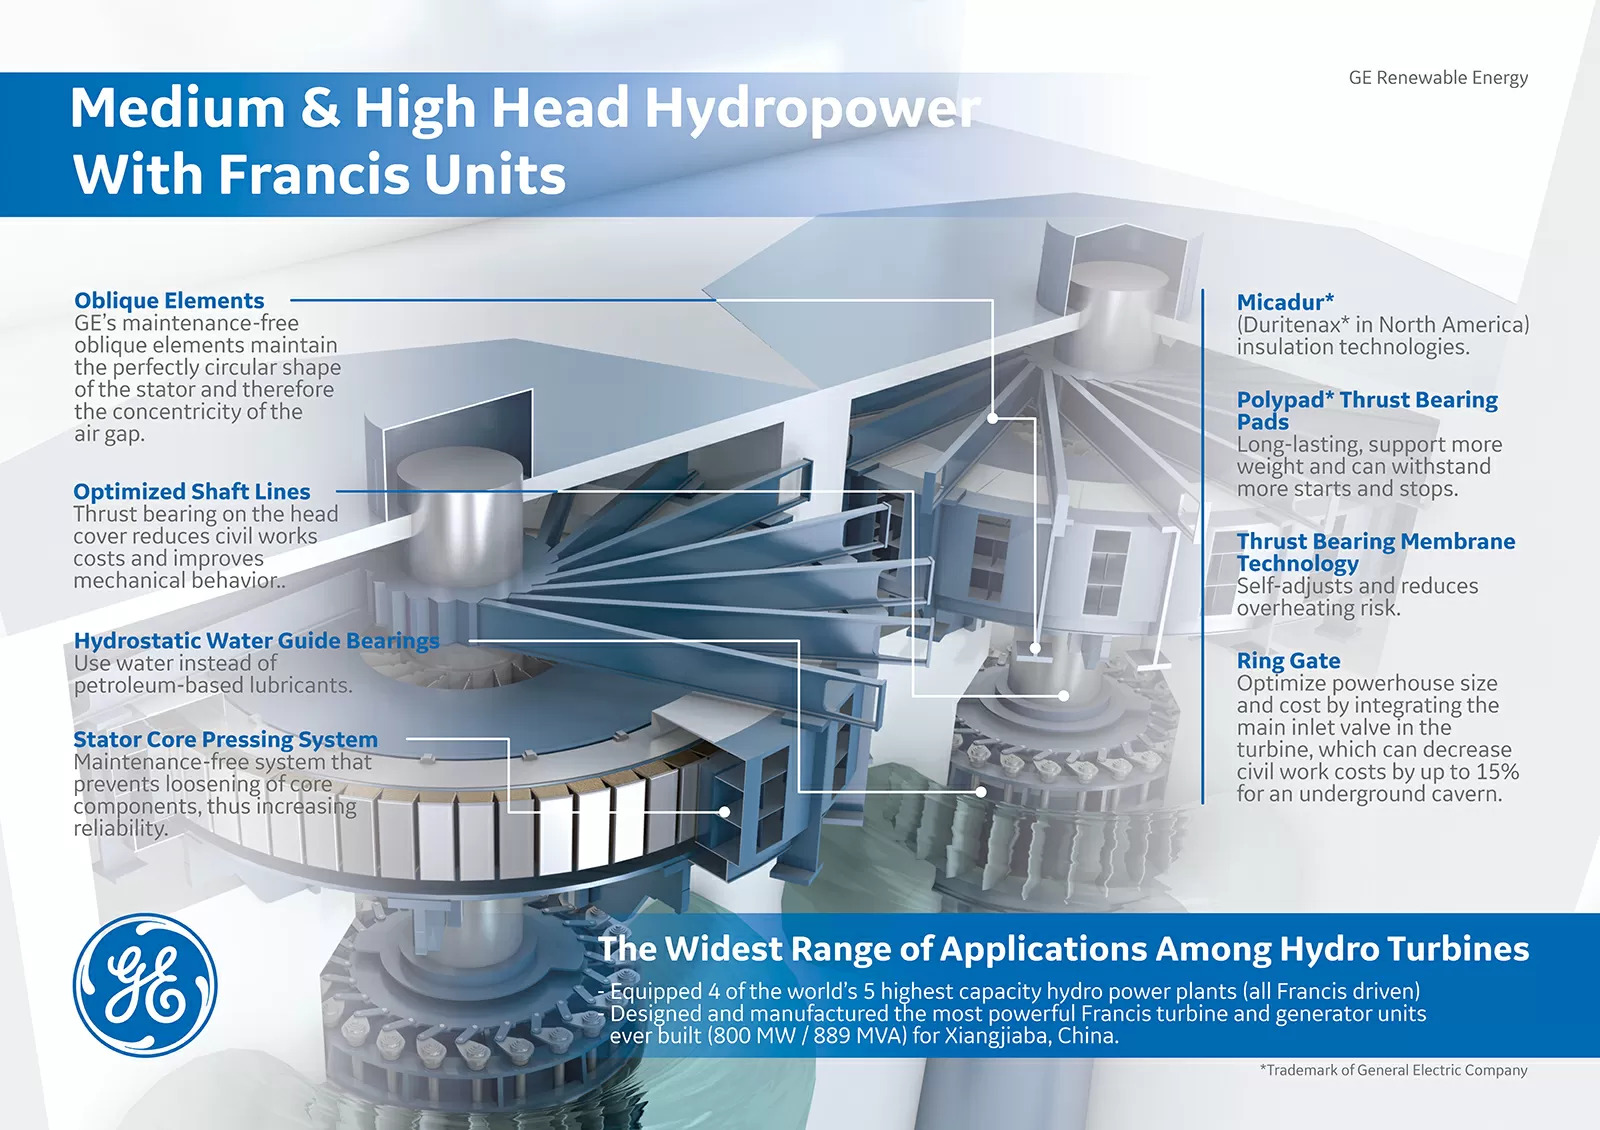 GE-Poster-Hydro-Francis-Technology-Low-Res.jpg